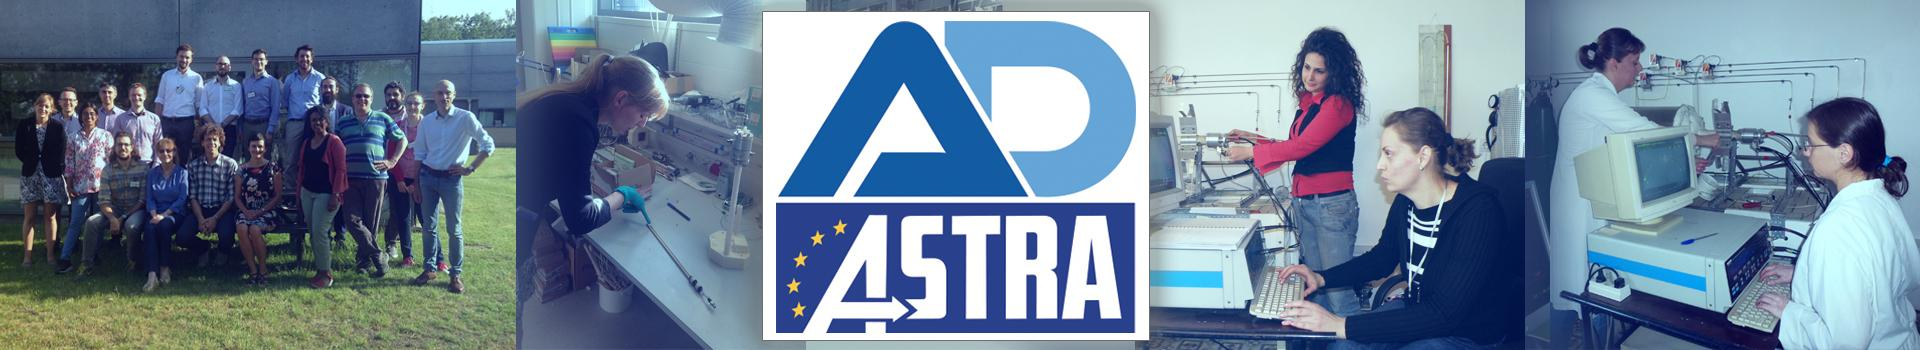 AD-ASTRA Project team and work